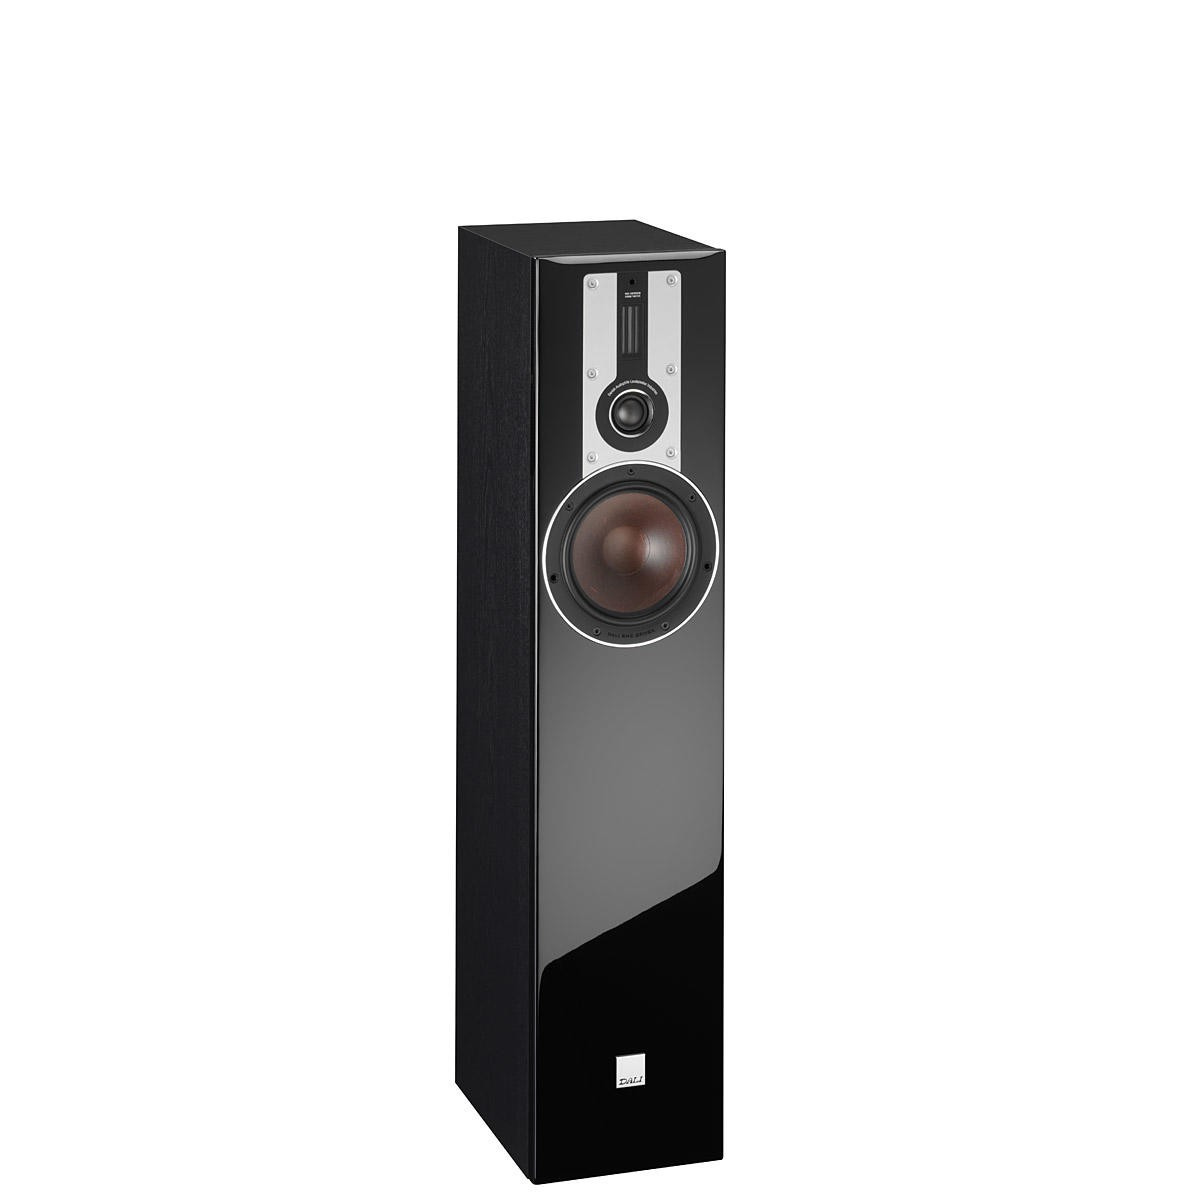 Floorstanding speaker OPTICON 5